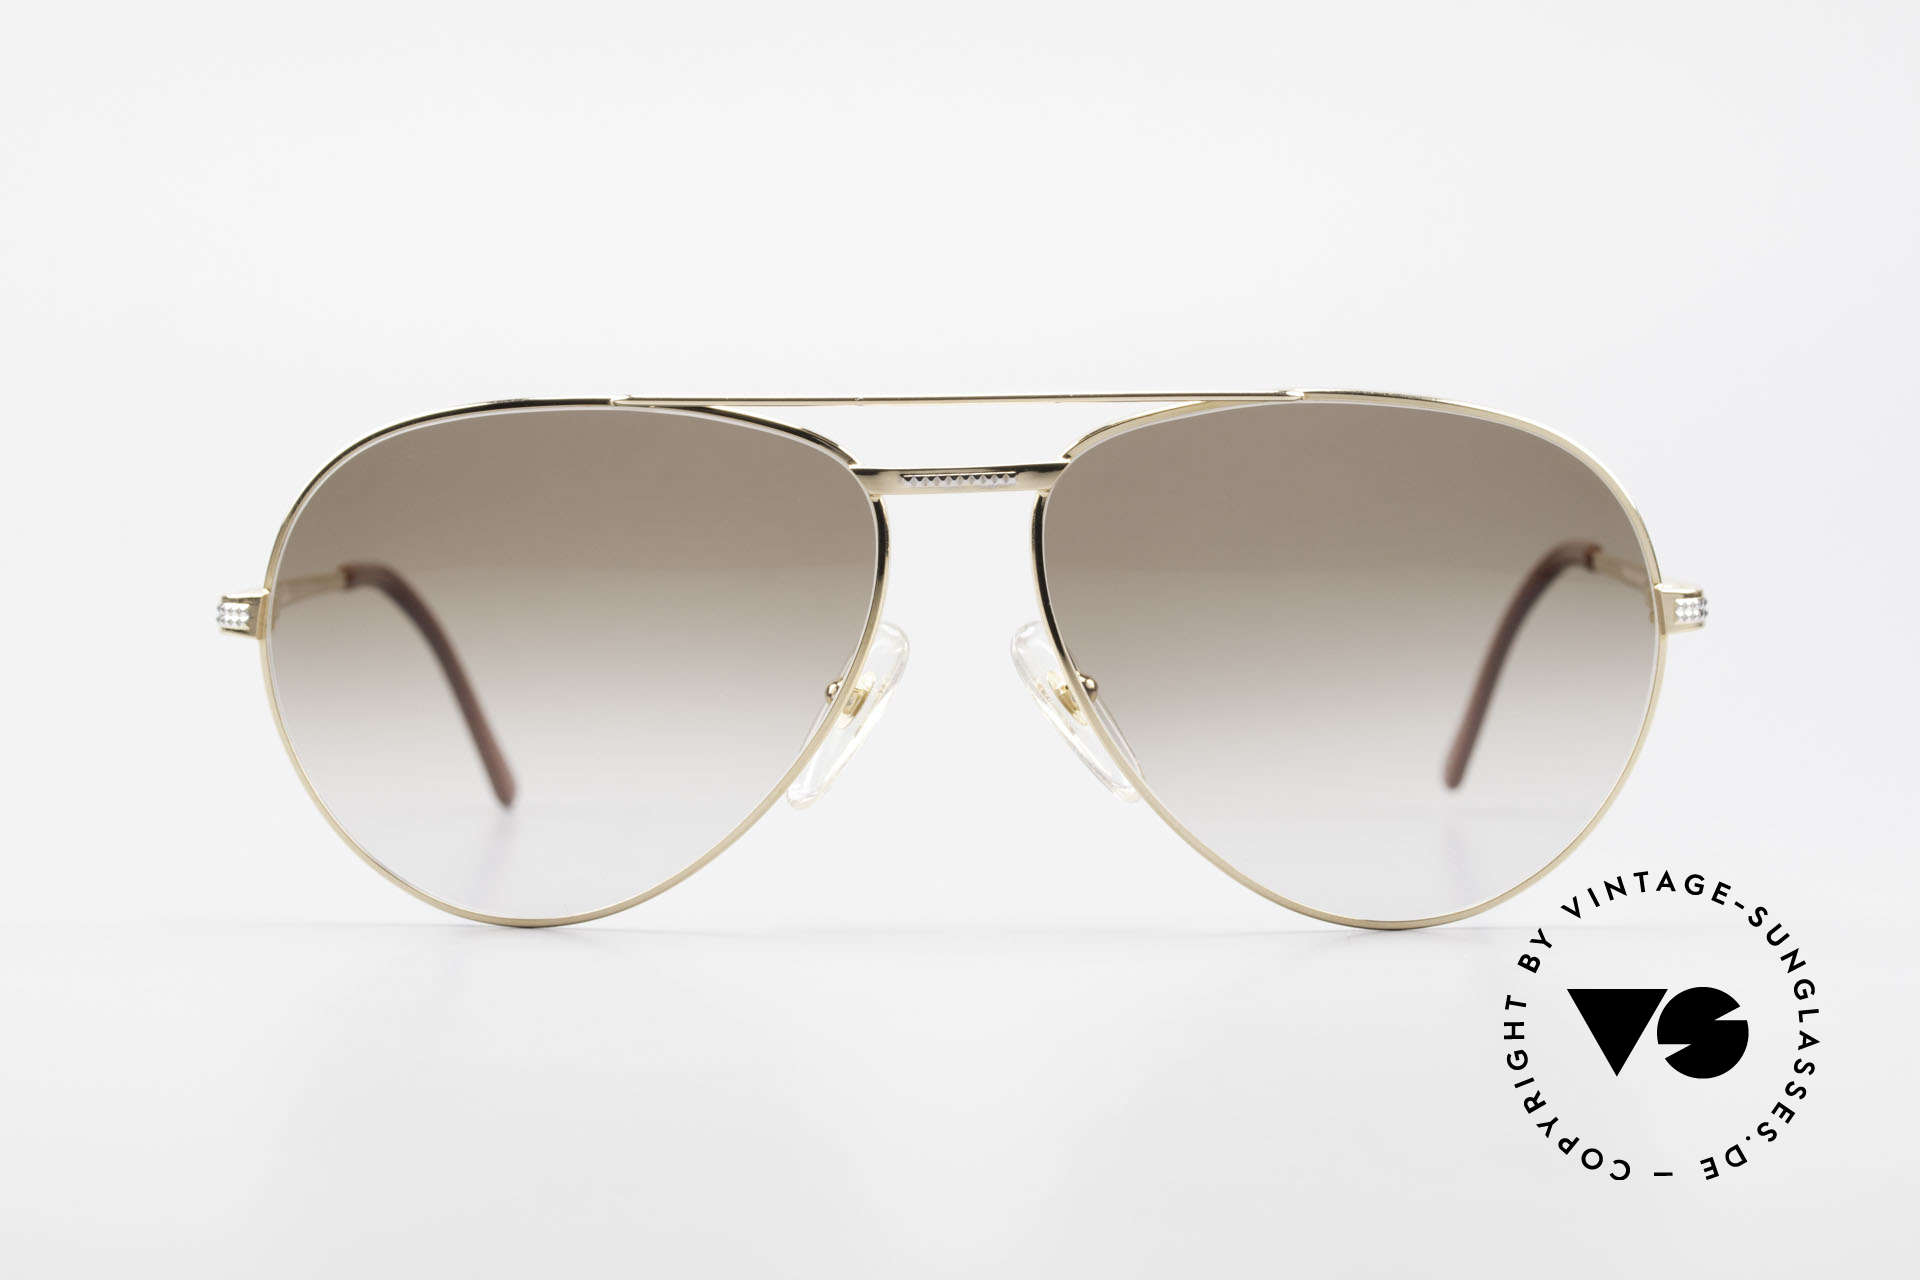 Christian Dior 2780 Gold-Plated 90's Aviator Frame, GOLD-PLATED metal frame in LARGE size 61/14, Made for Men